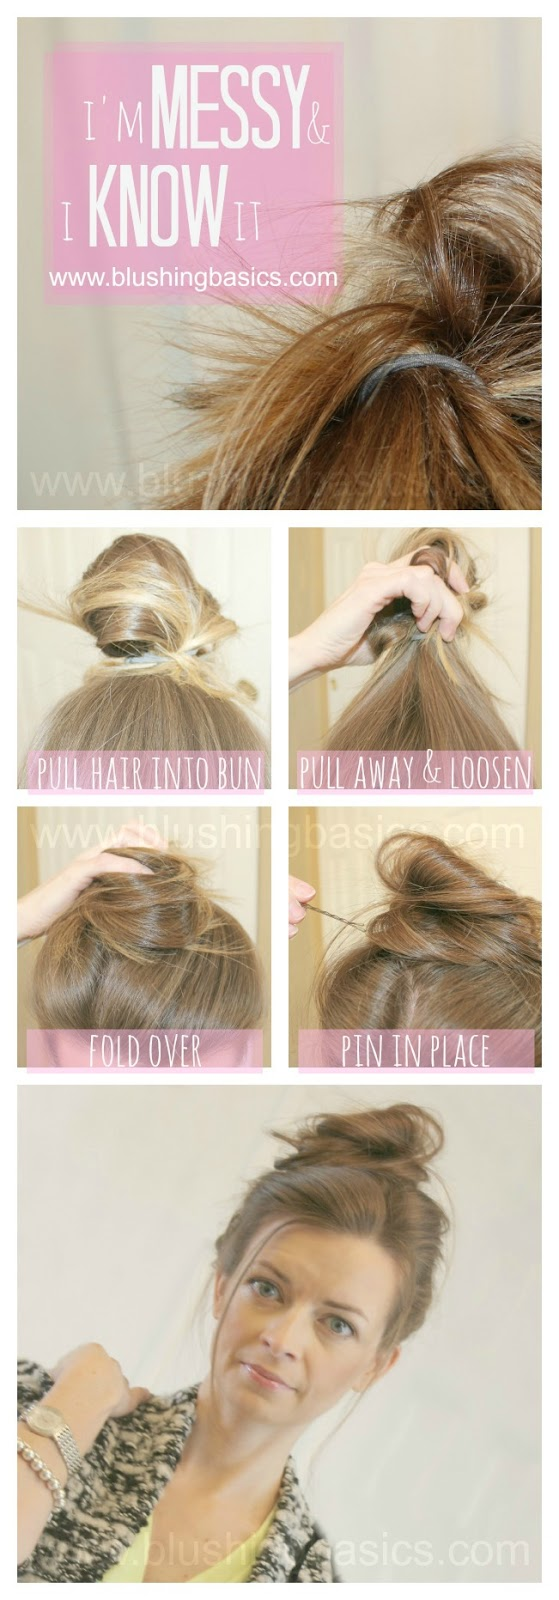 how to do twist hairstyles : blushing basics: Messy Bun How To